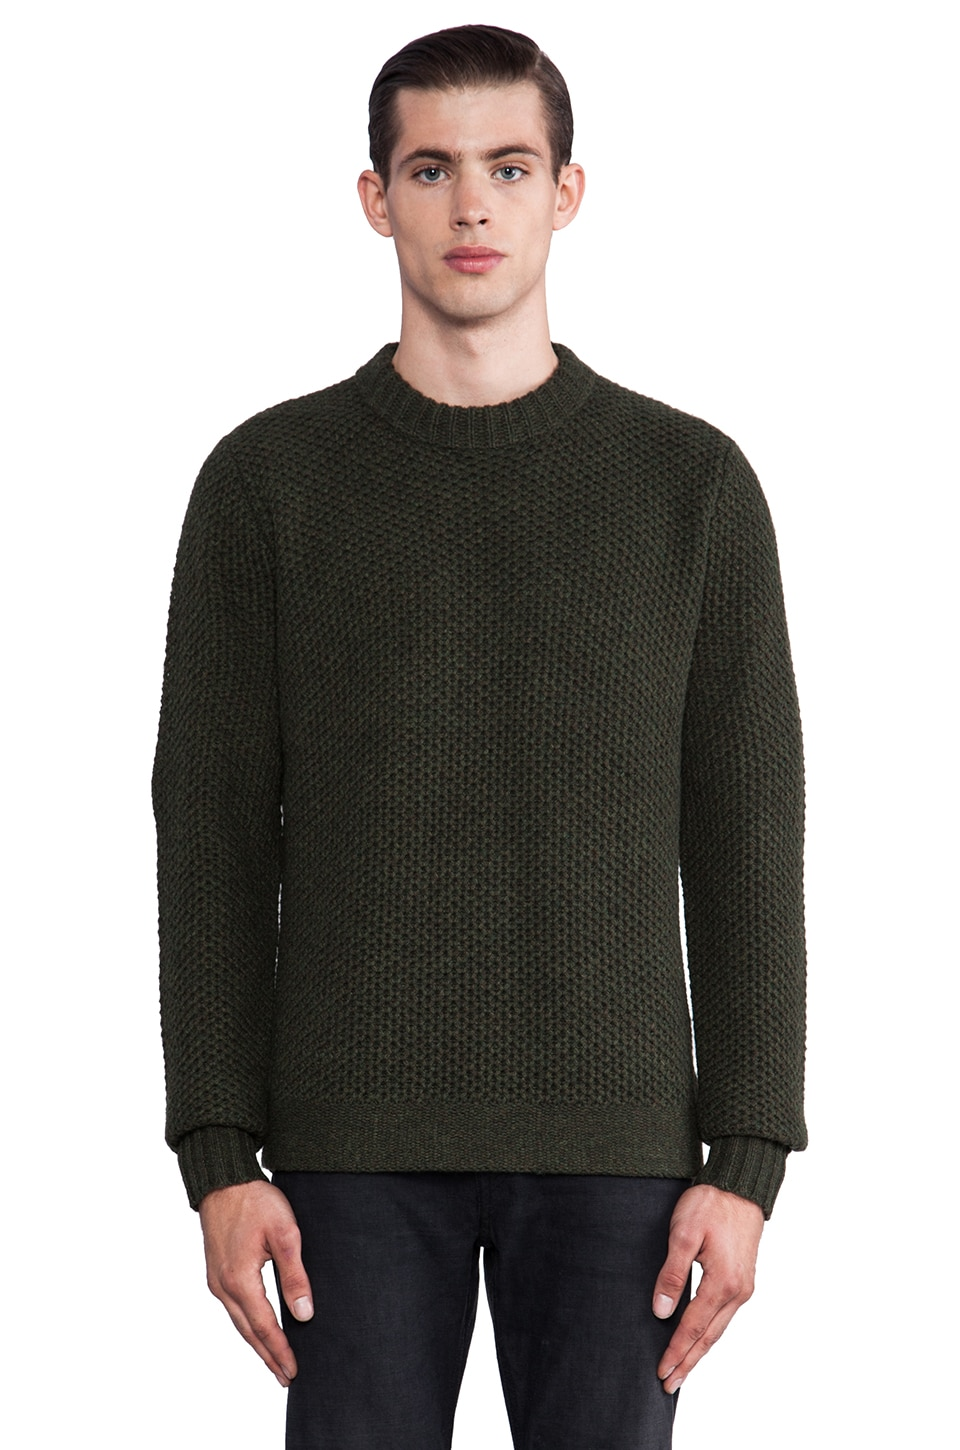 Natural Selection Denim Hive Crew Knit Sweater in Olive